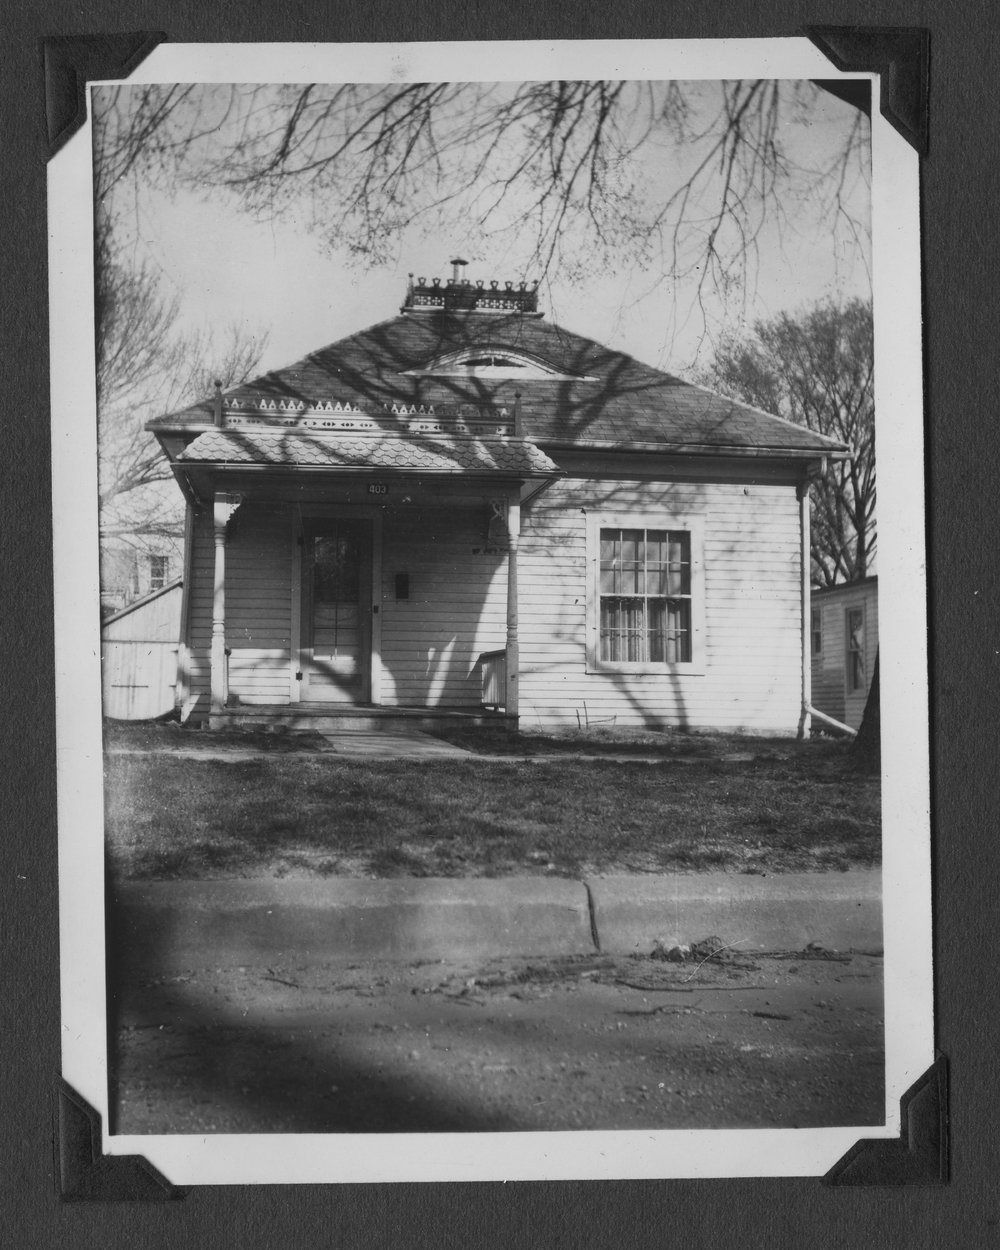 Melvin Brose photograph album - Annie Brose's house located at Broadway and Oak Streets in Valley Falls, Kansas.